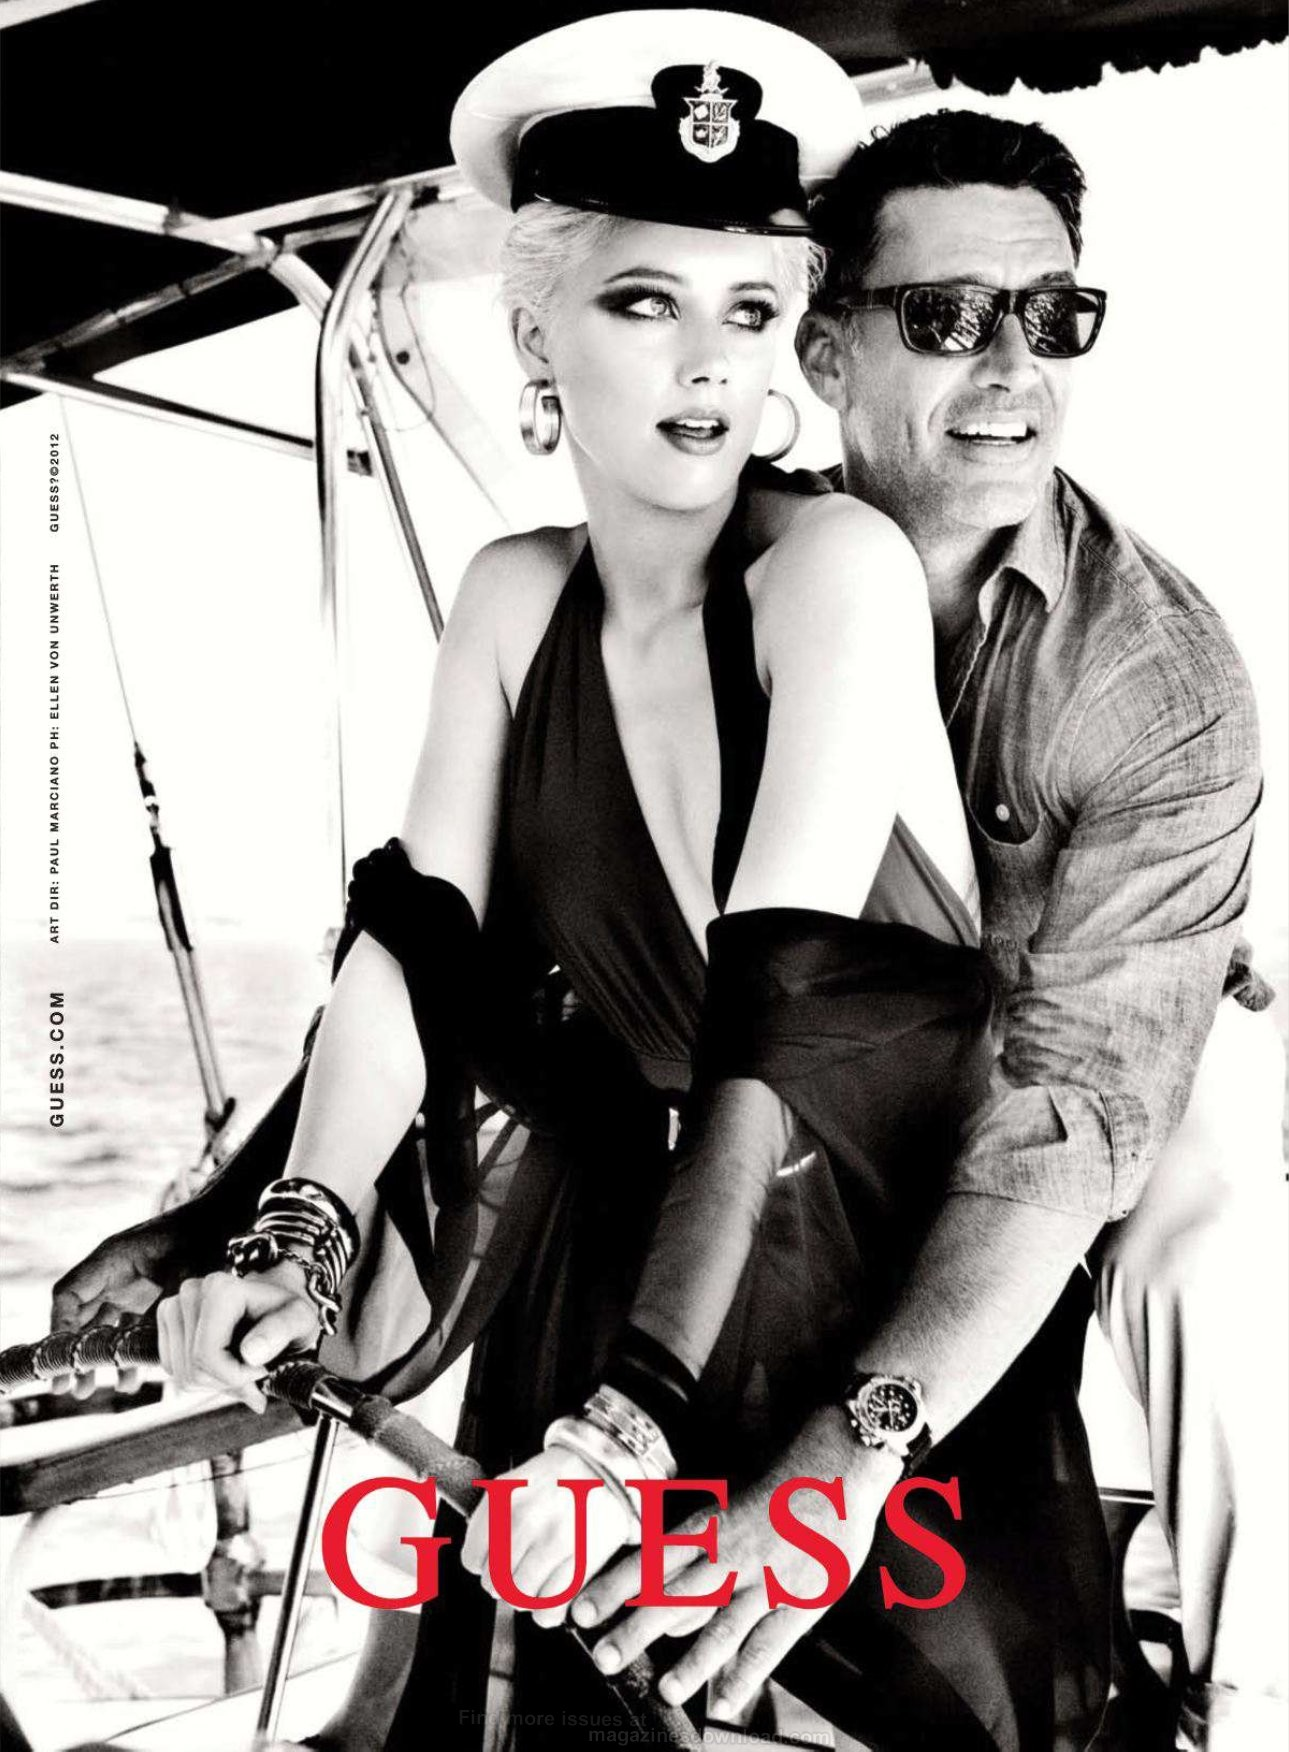 guess spring summer 2012 ad campaign art8ambys blog